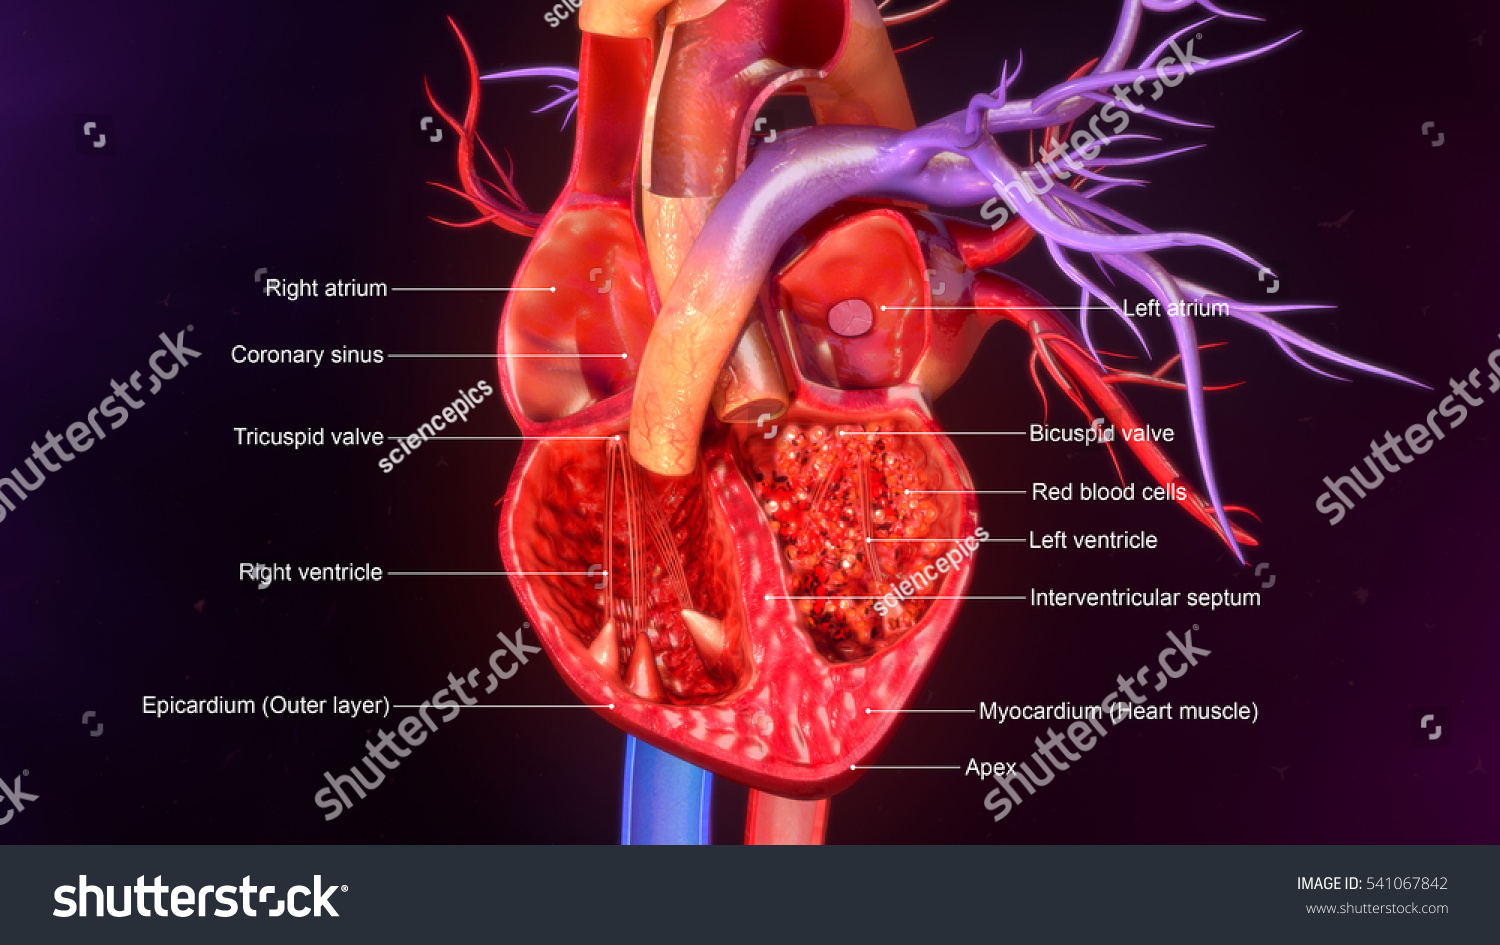 Human Heart Anatomy 3 D Illustration Stock Illustration 541067842 ...